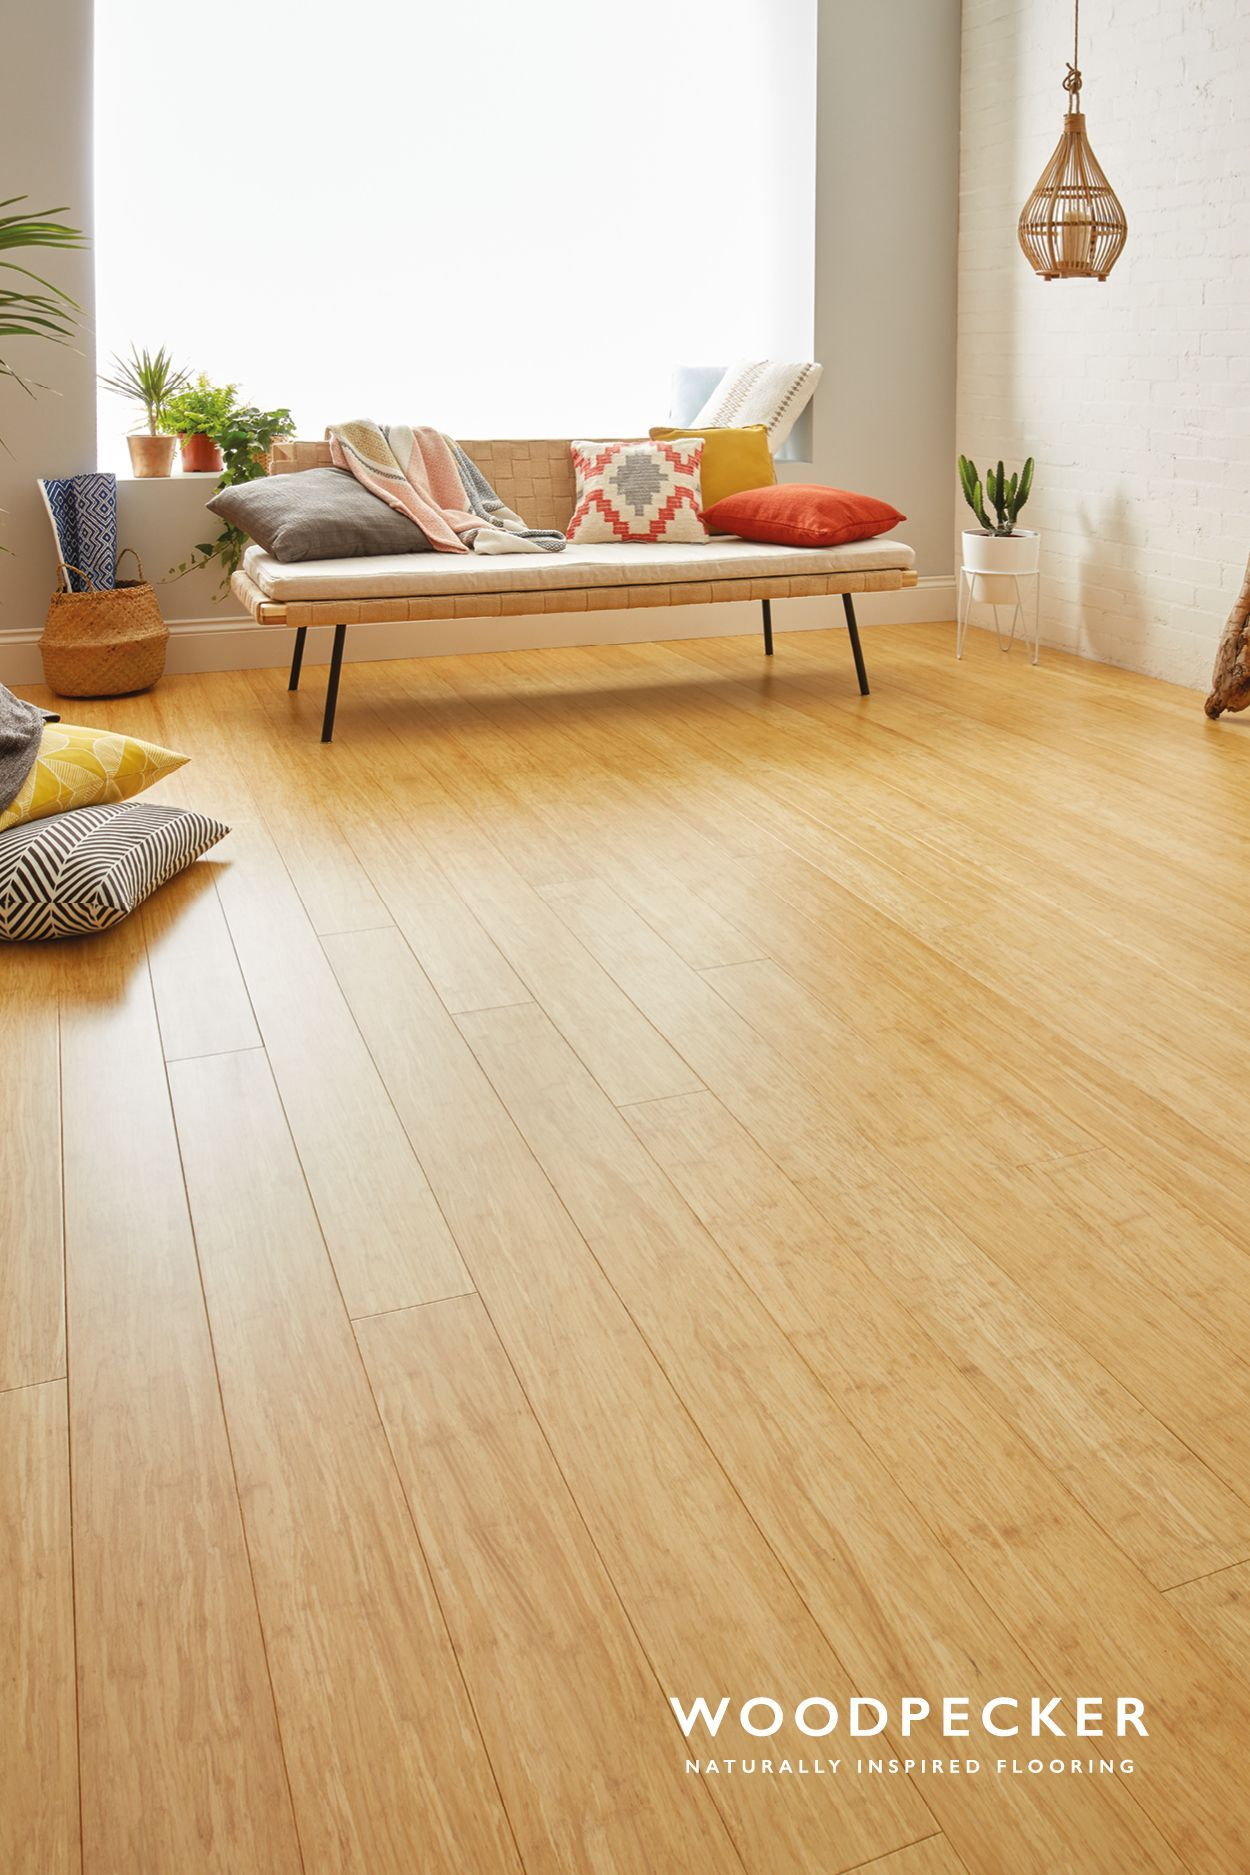 Oxwich Natural Strand In 2020 Living Room Wood Floor Bamboo